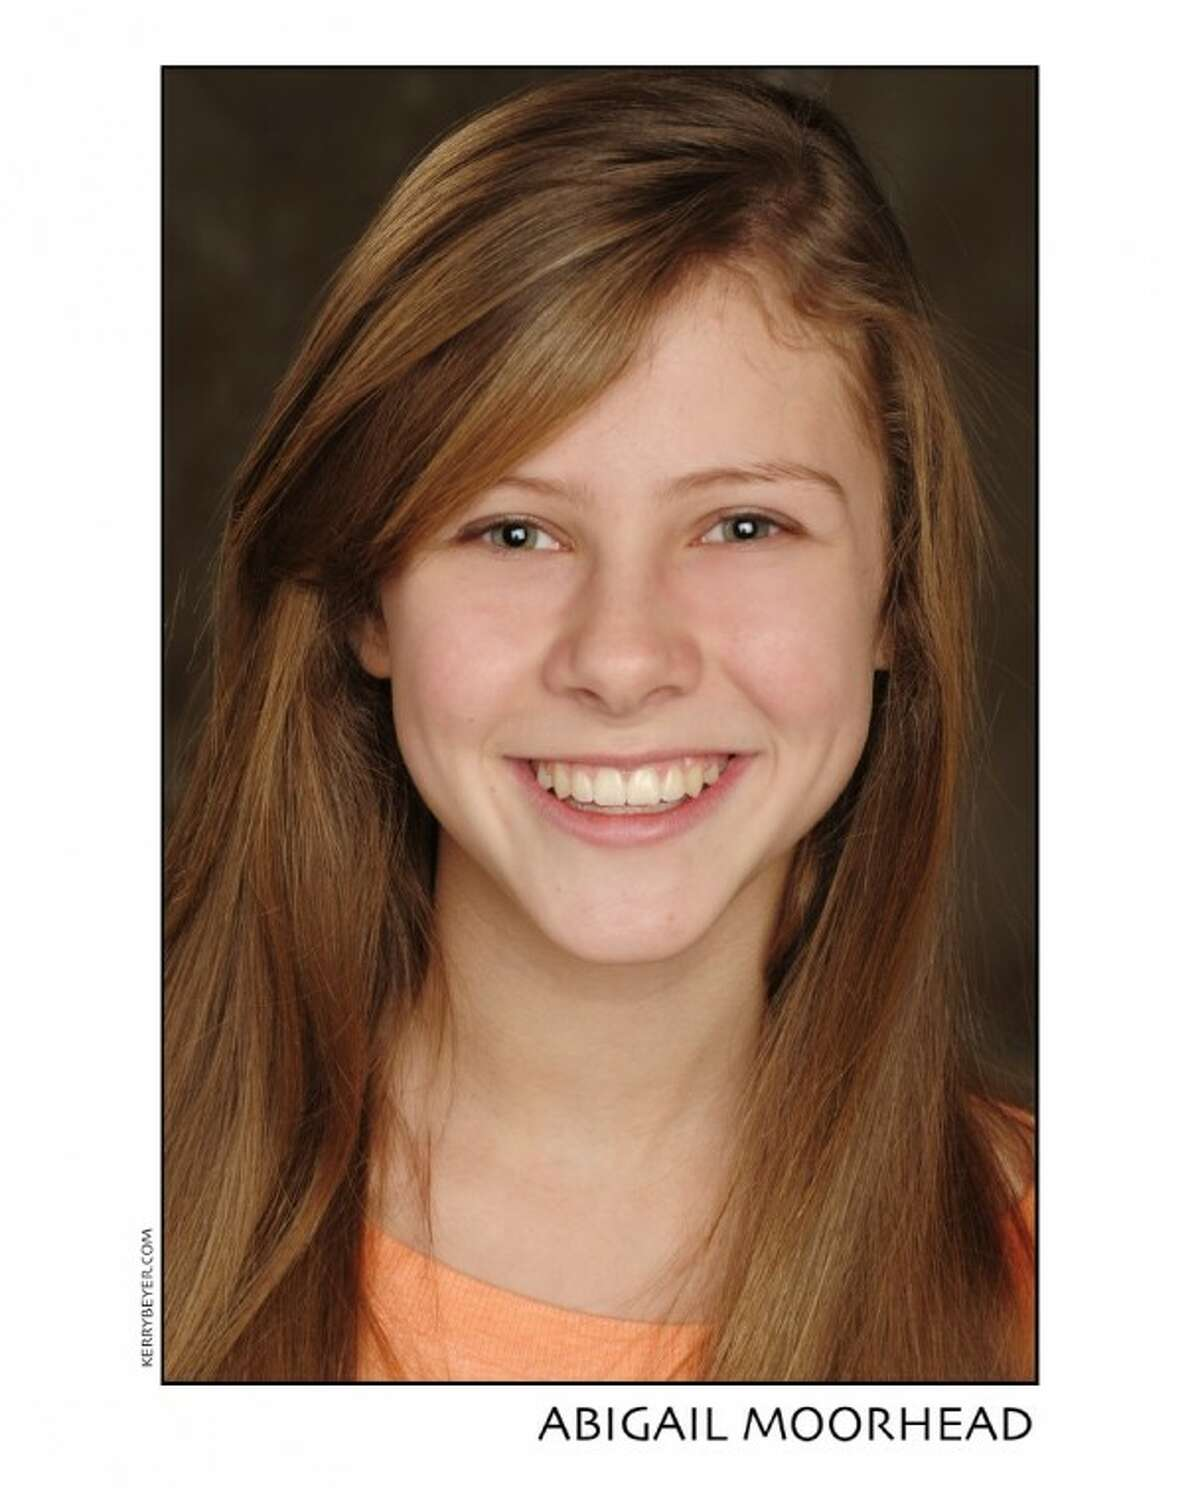 Abigail Moorhead, 13 years old from Memorial, will appear in the TUTS' production of